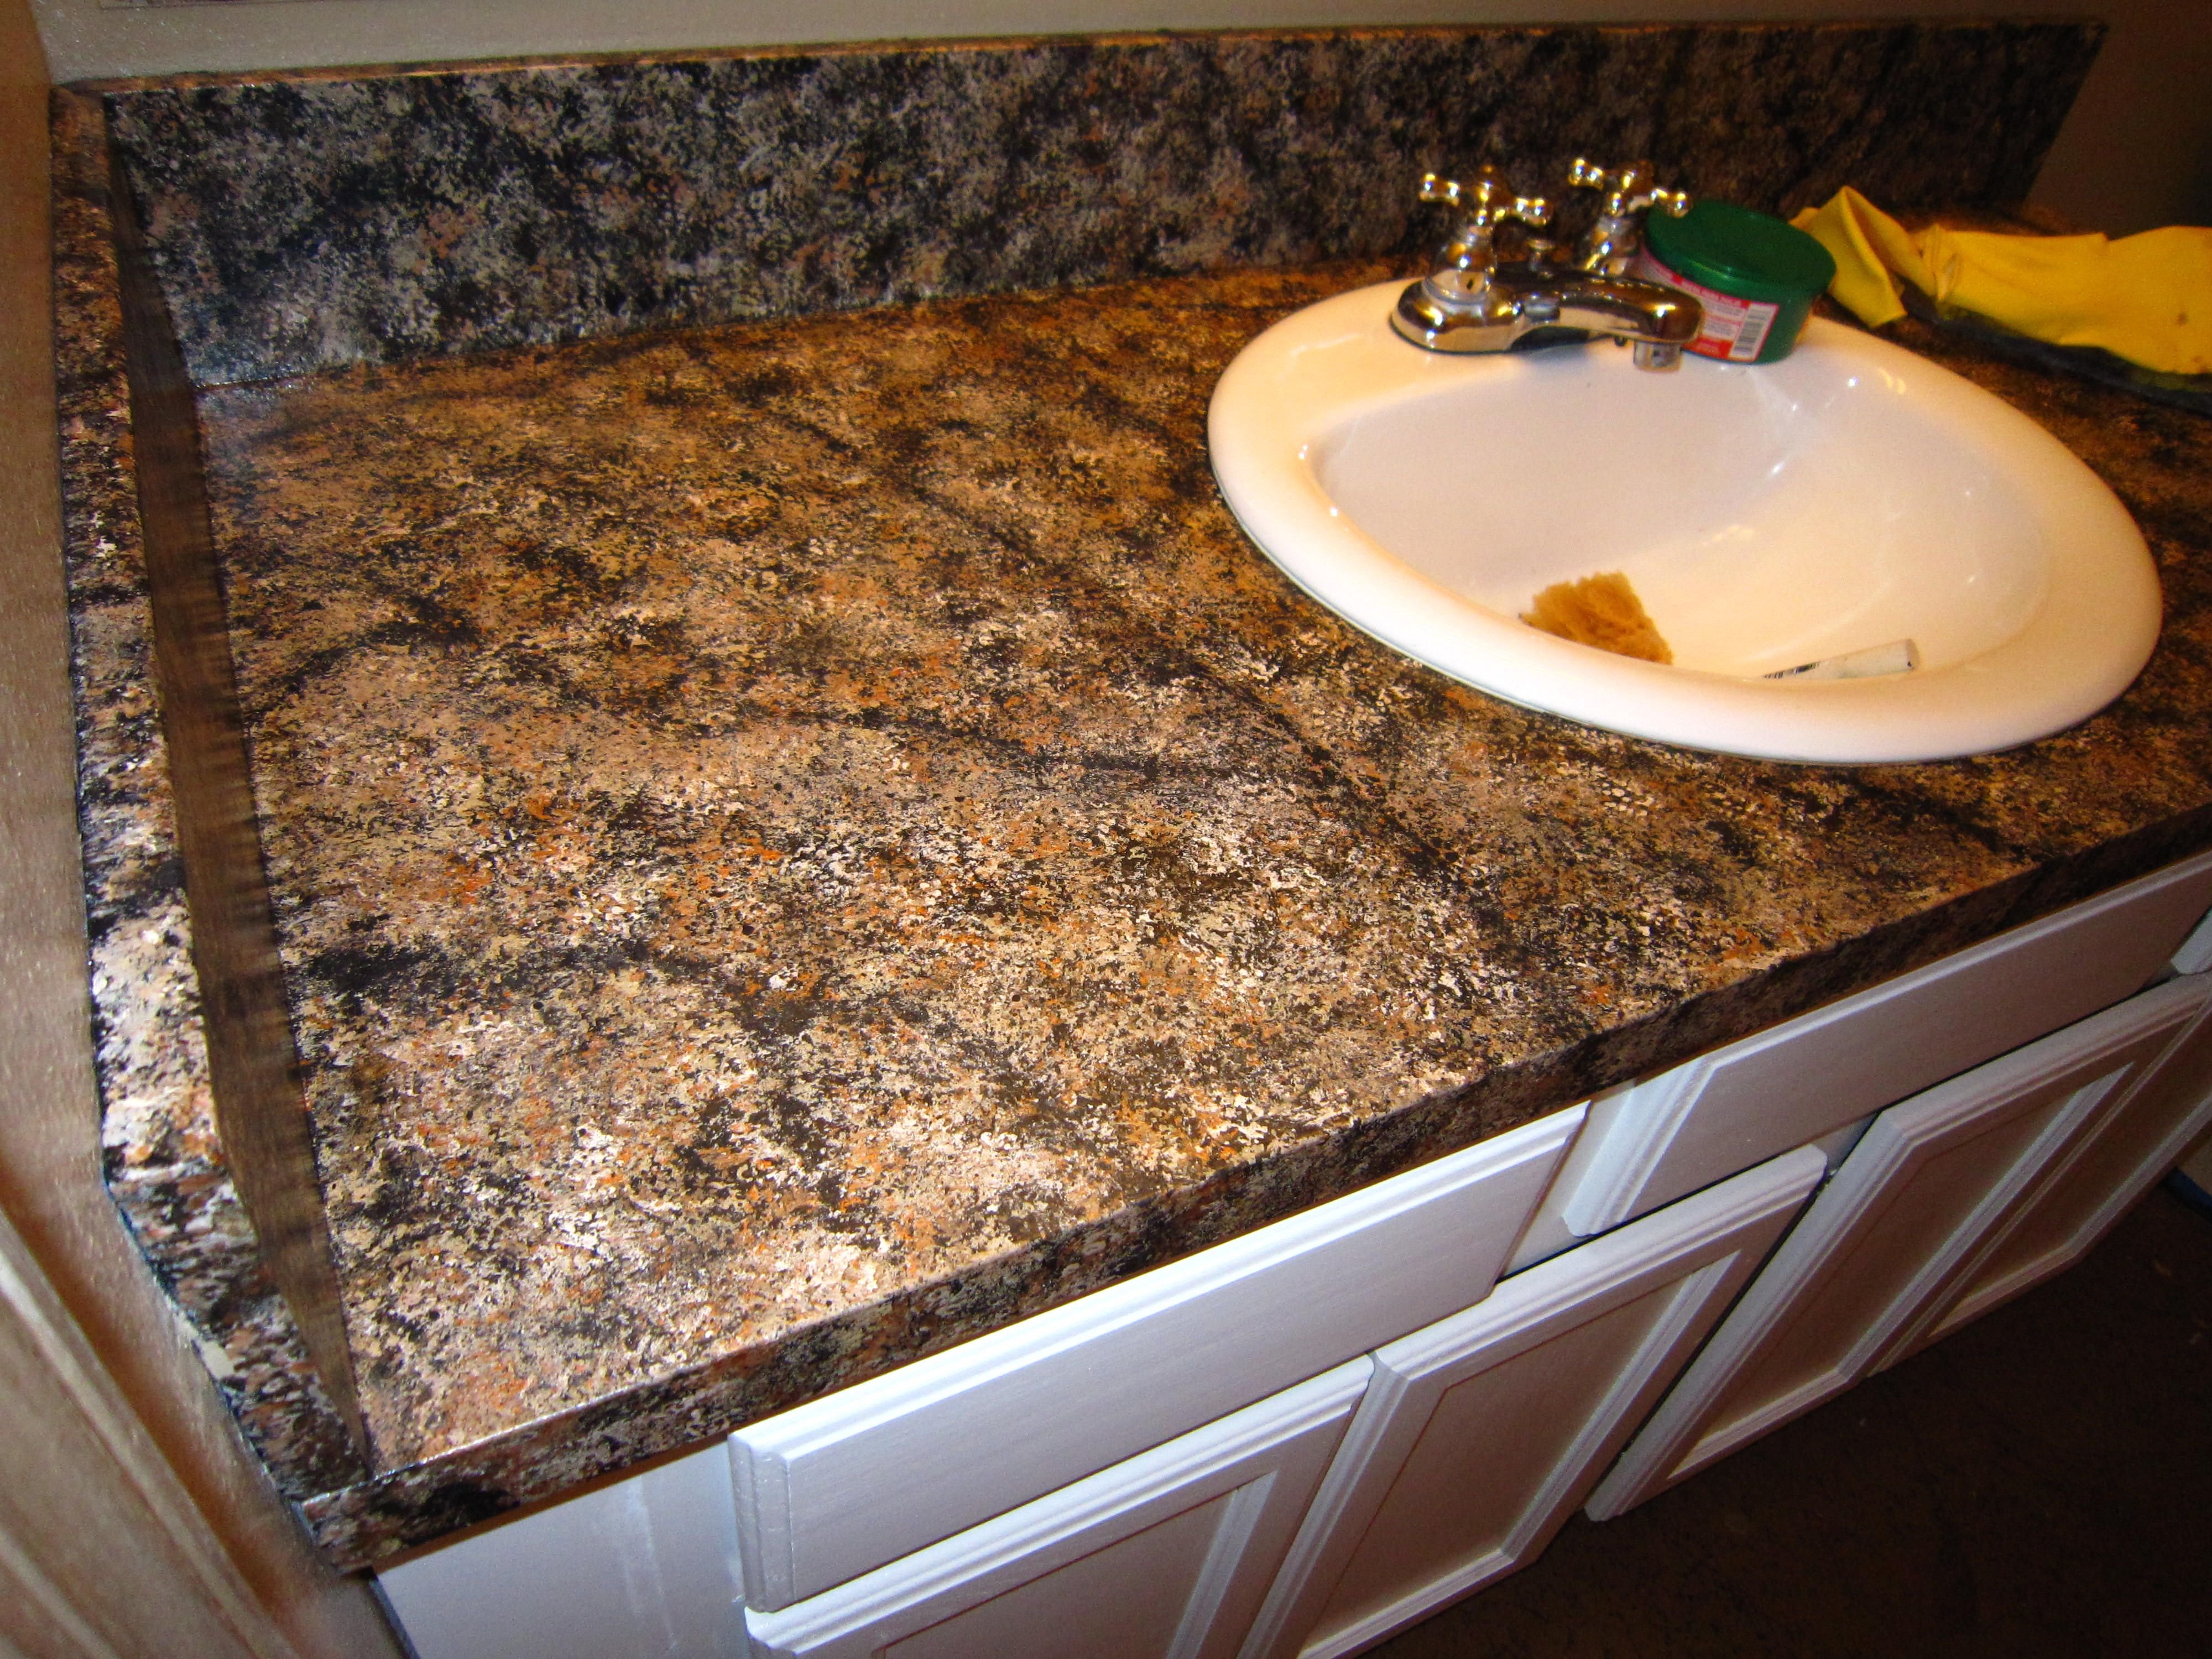 Marble Countertop Paint Kit Diy Faux Granite Countertop Without A Kit For Under 60